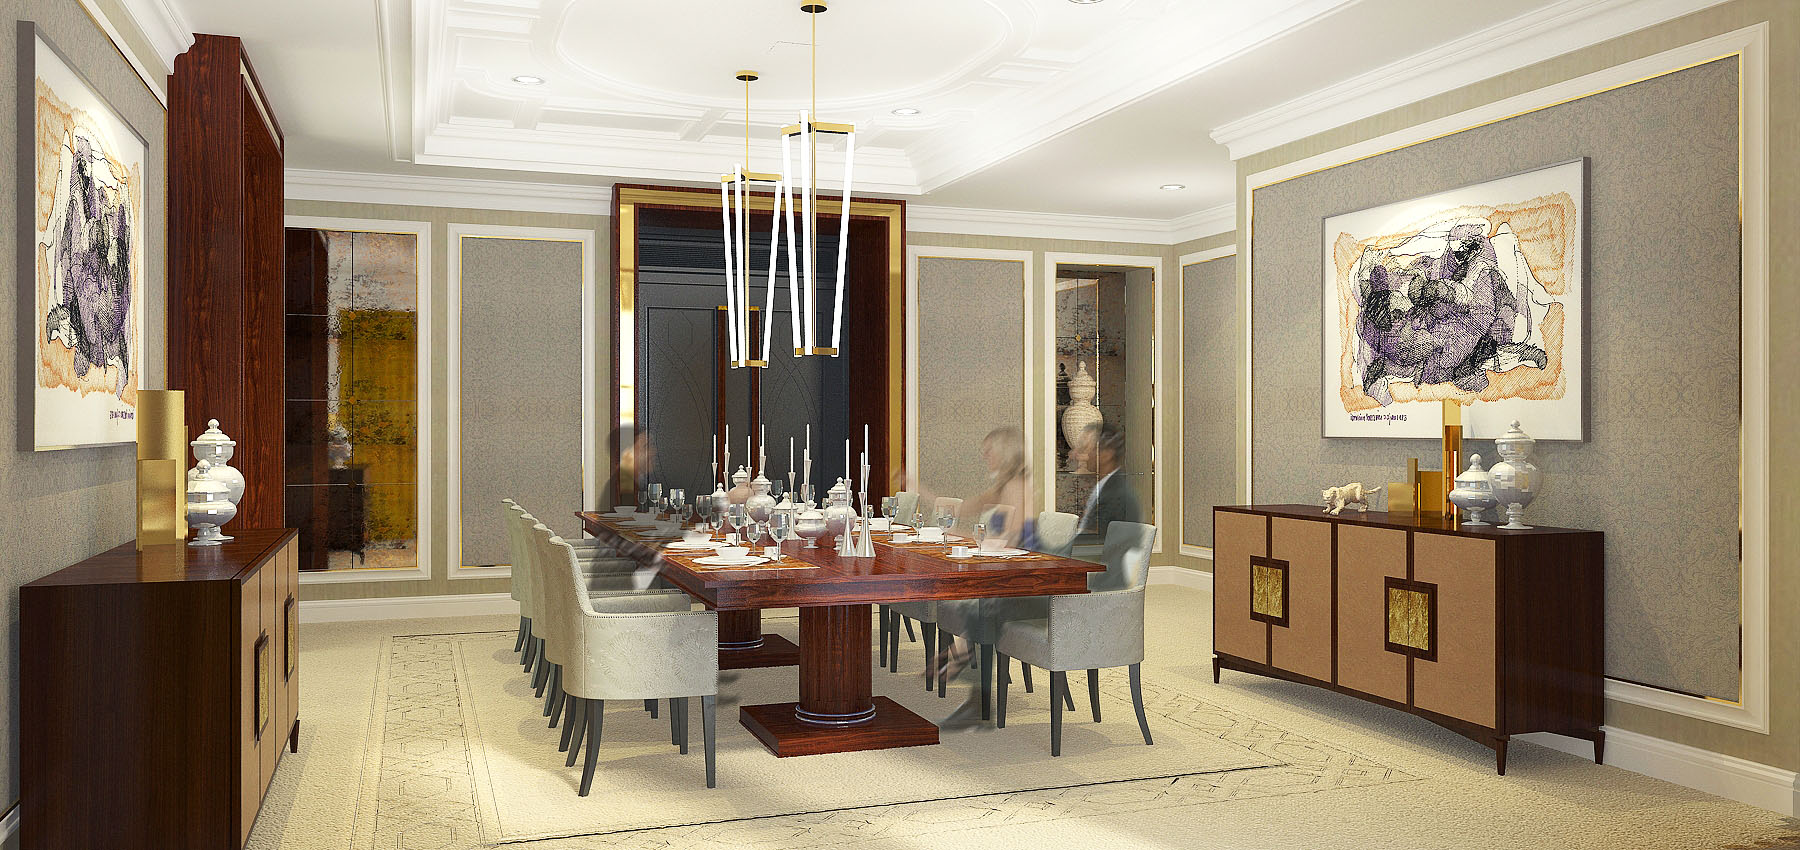 Penthouse - DINING